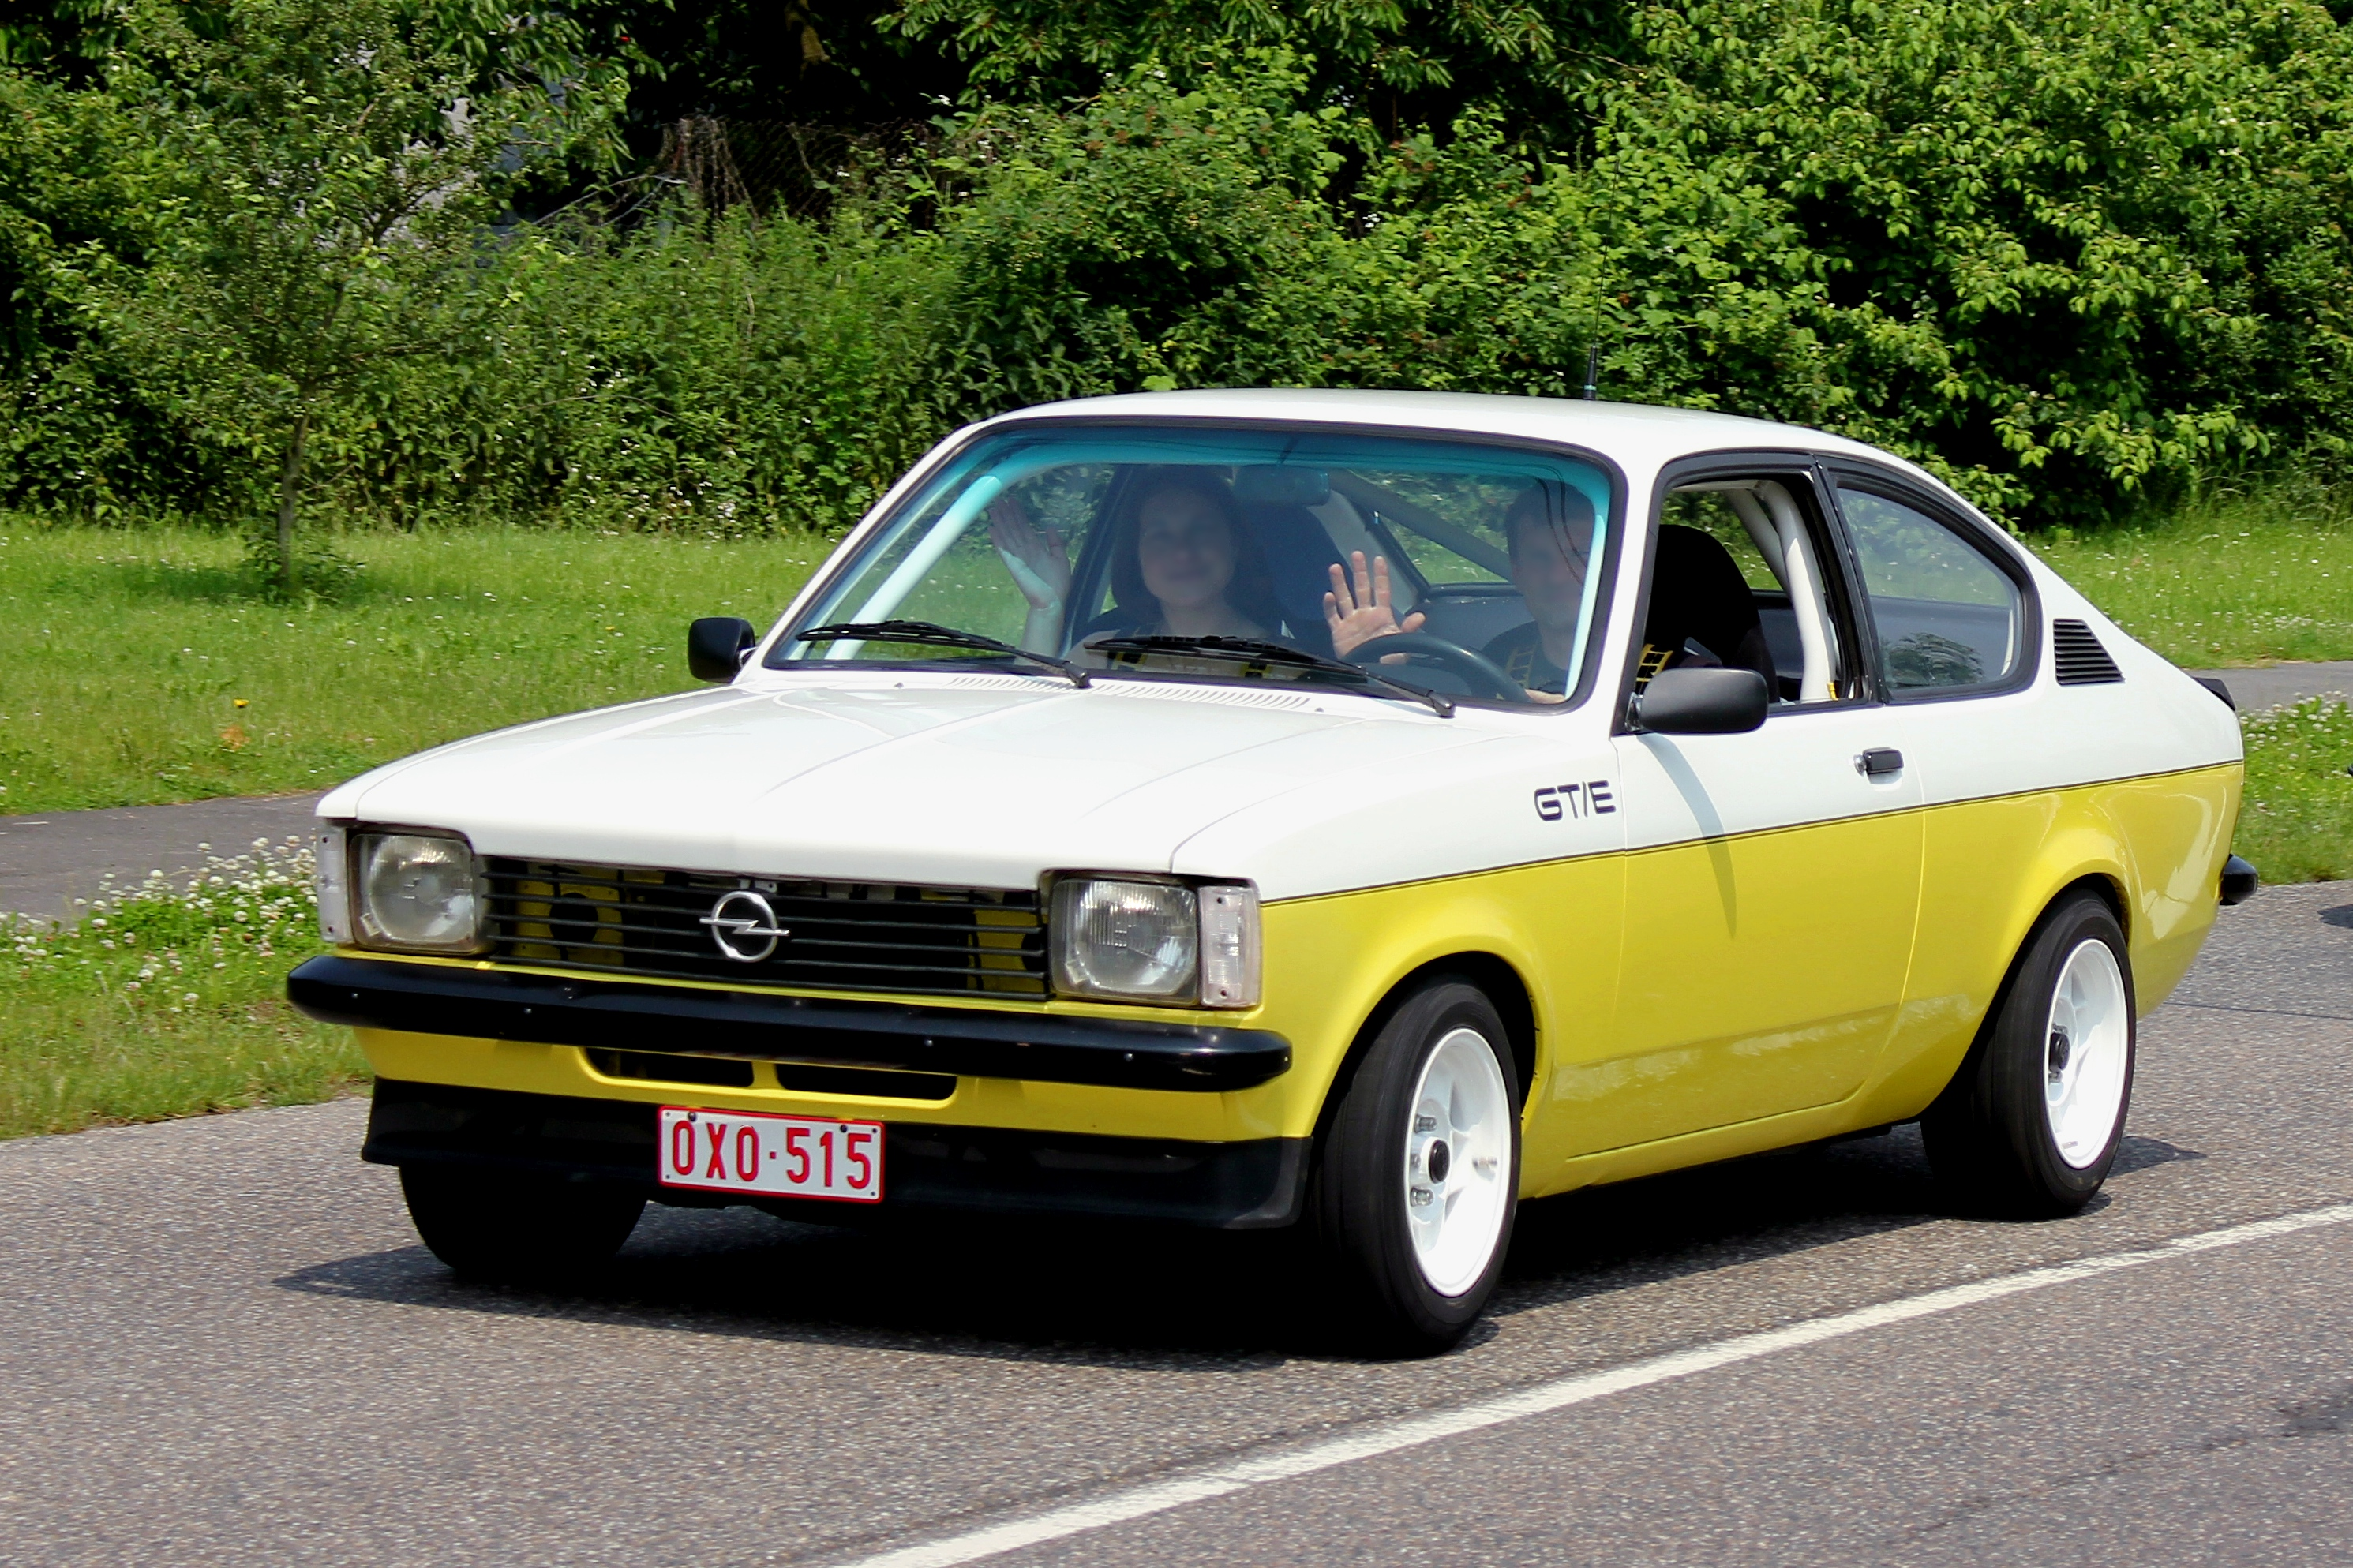 file:opel kadett c gte (foto sp 2016-06-05) - wikimedia commons